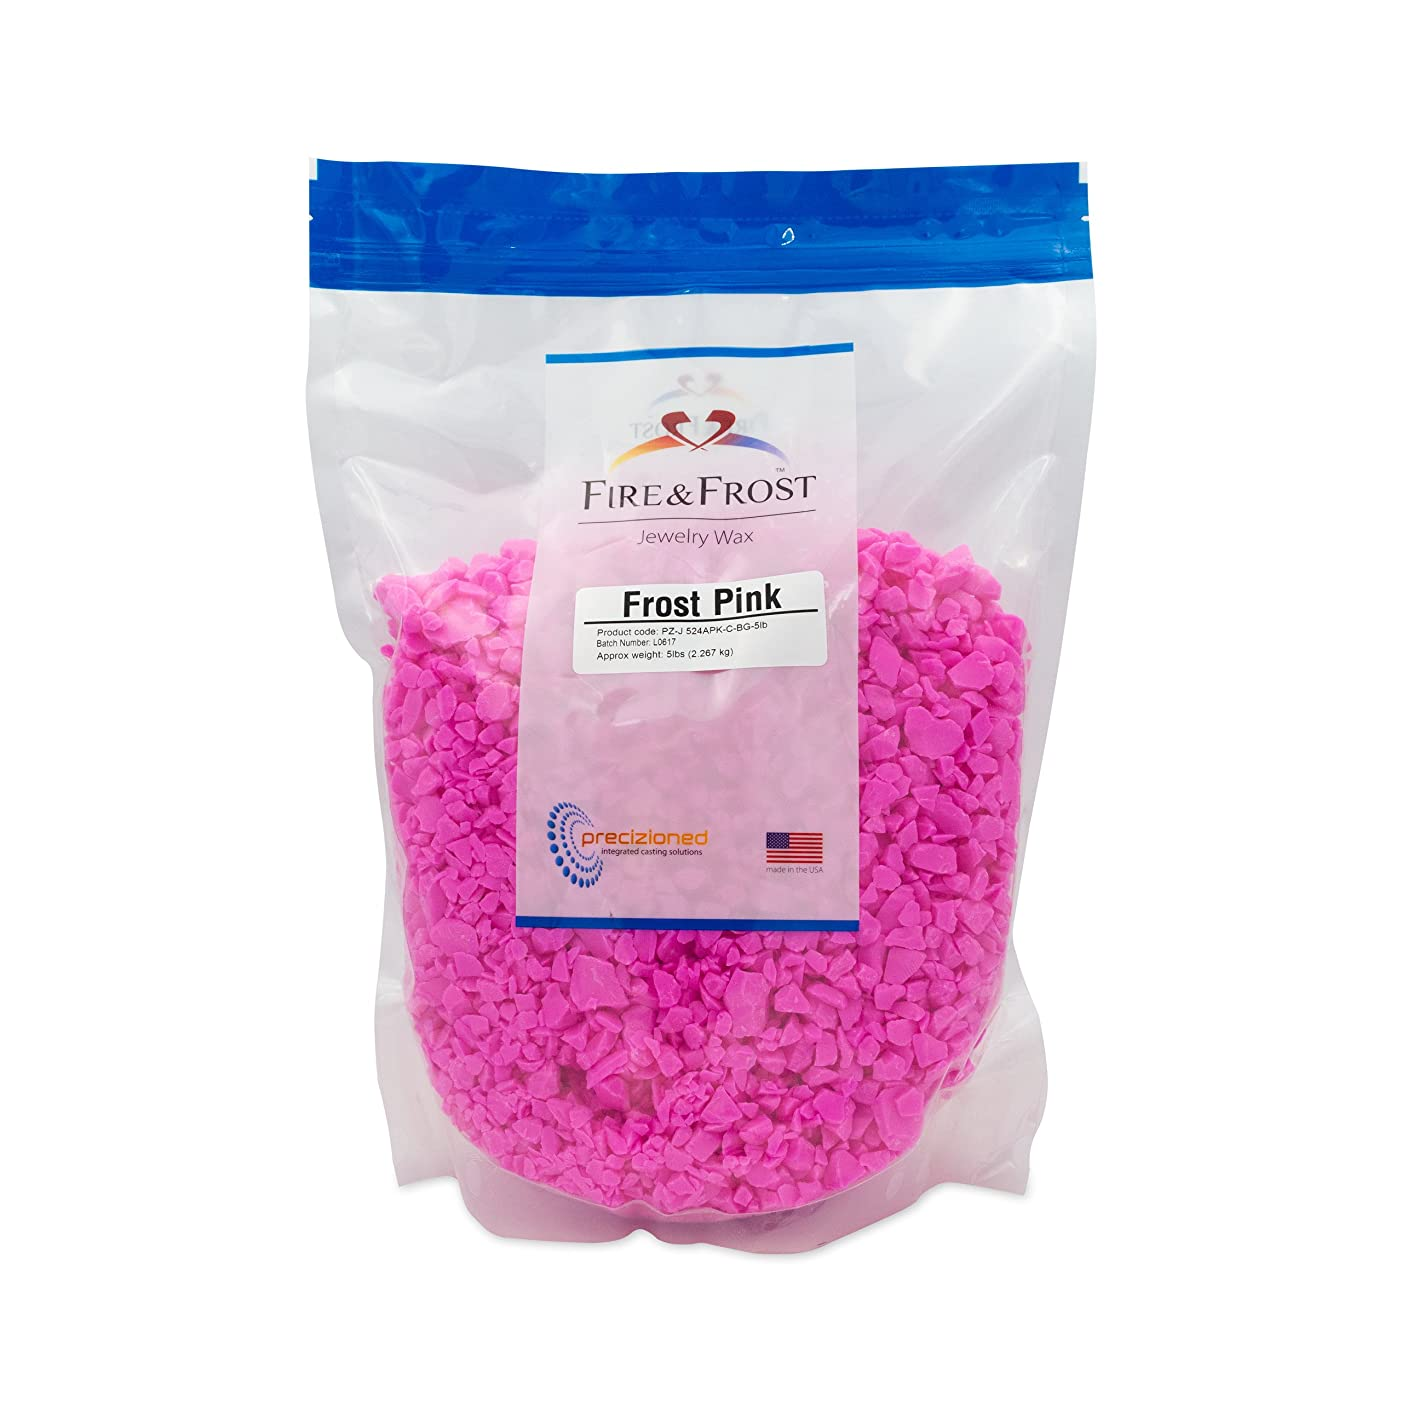 Frost Pink, Jewelry Injection Wax. 5lb